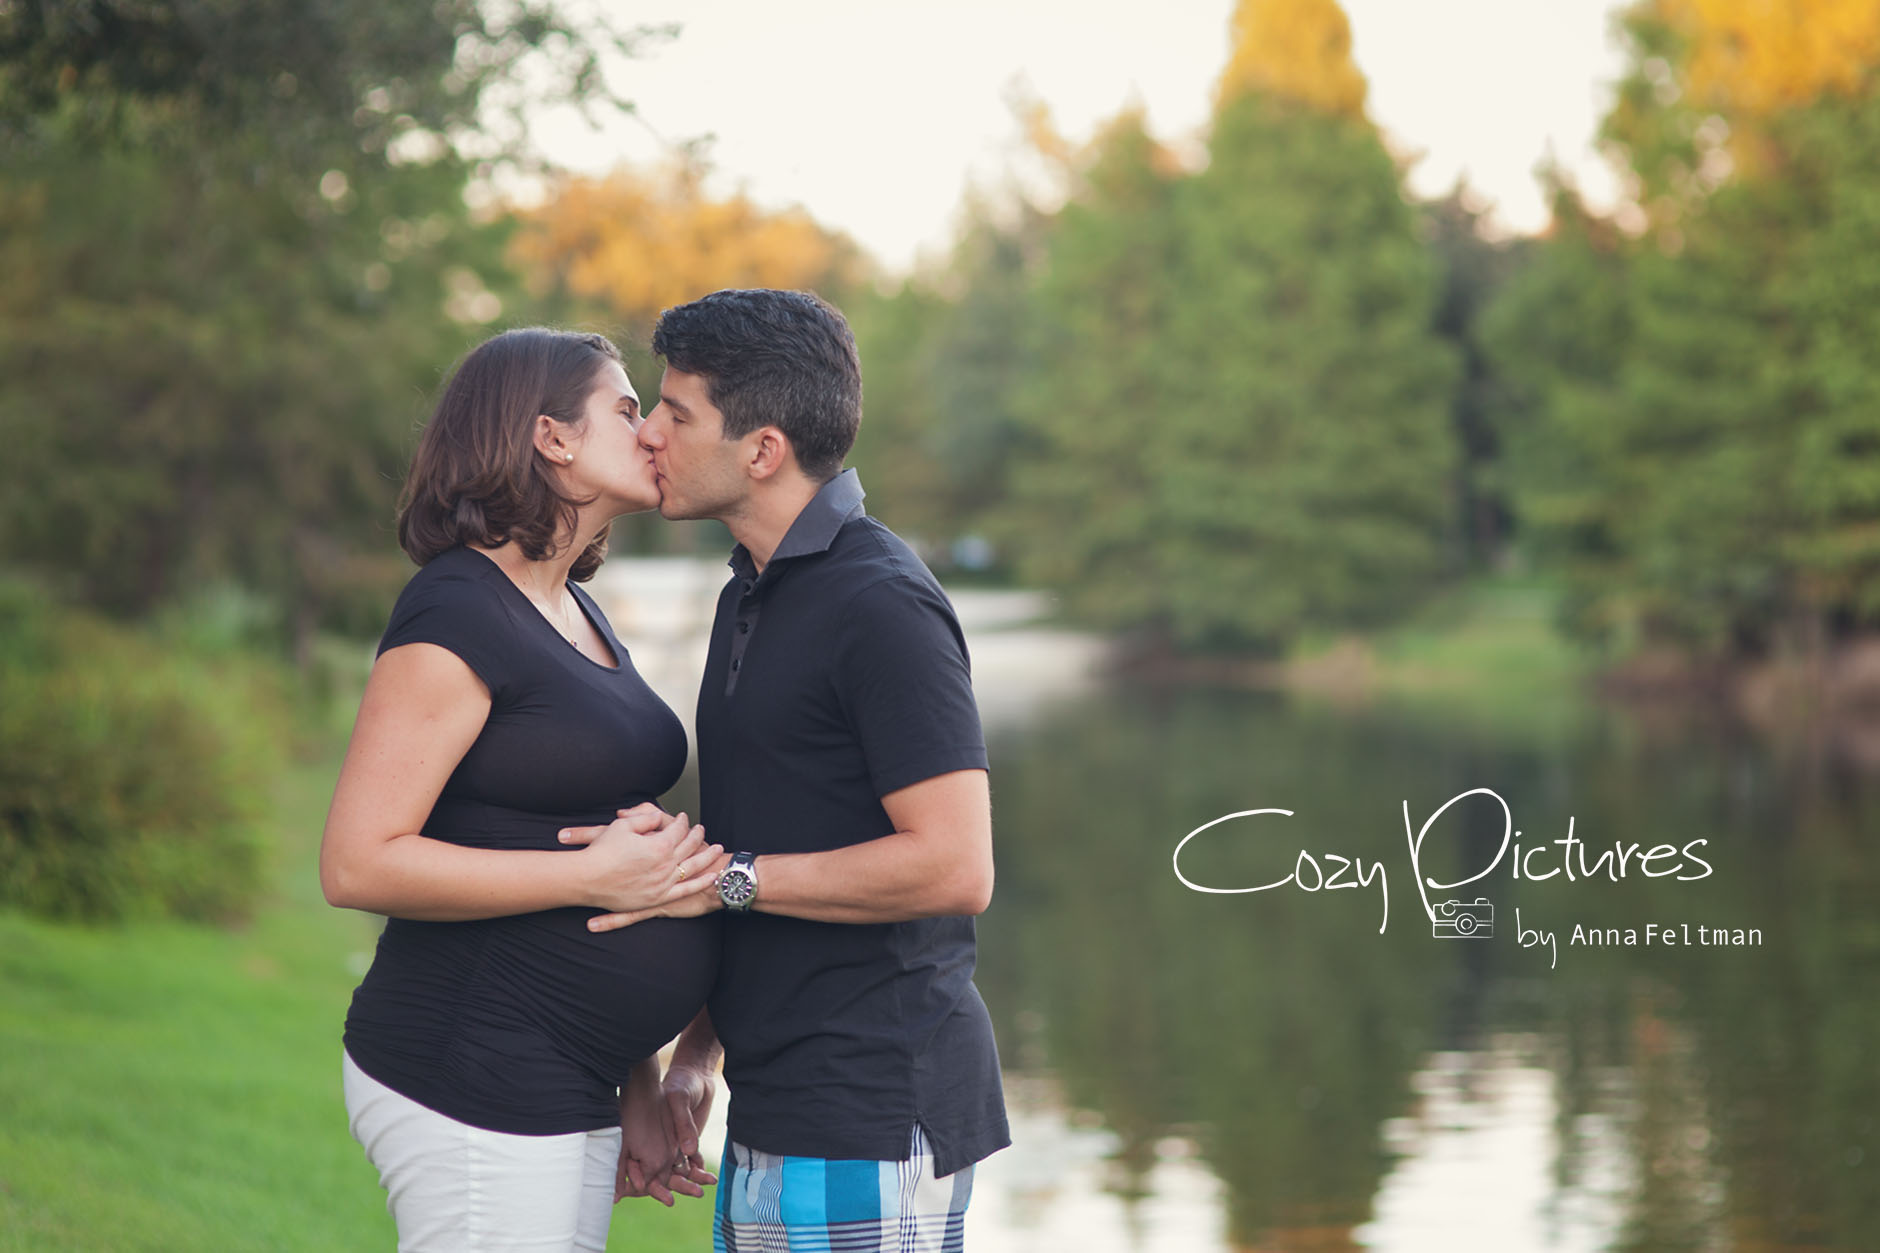 Maternity Photographer Orlando_Cozy Pictures_3.jpg